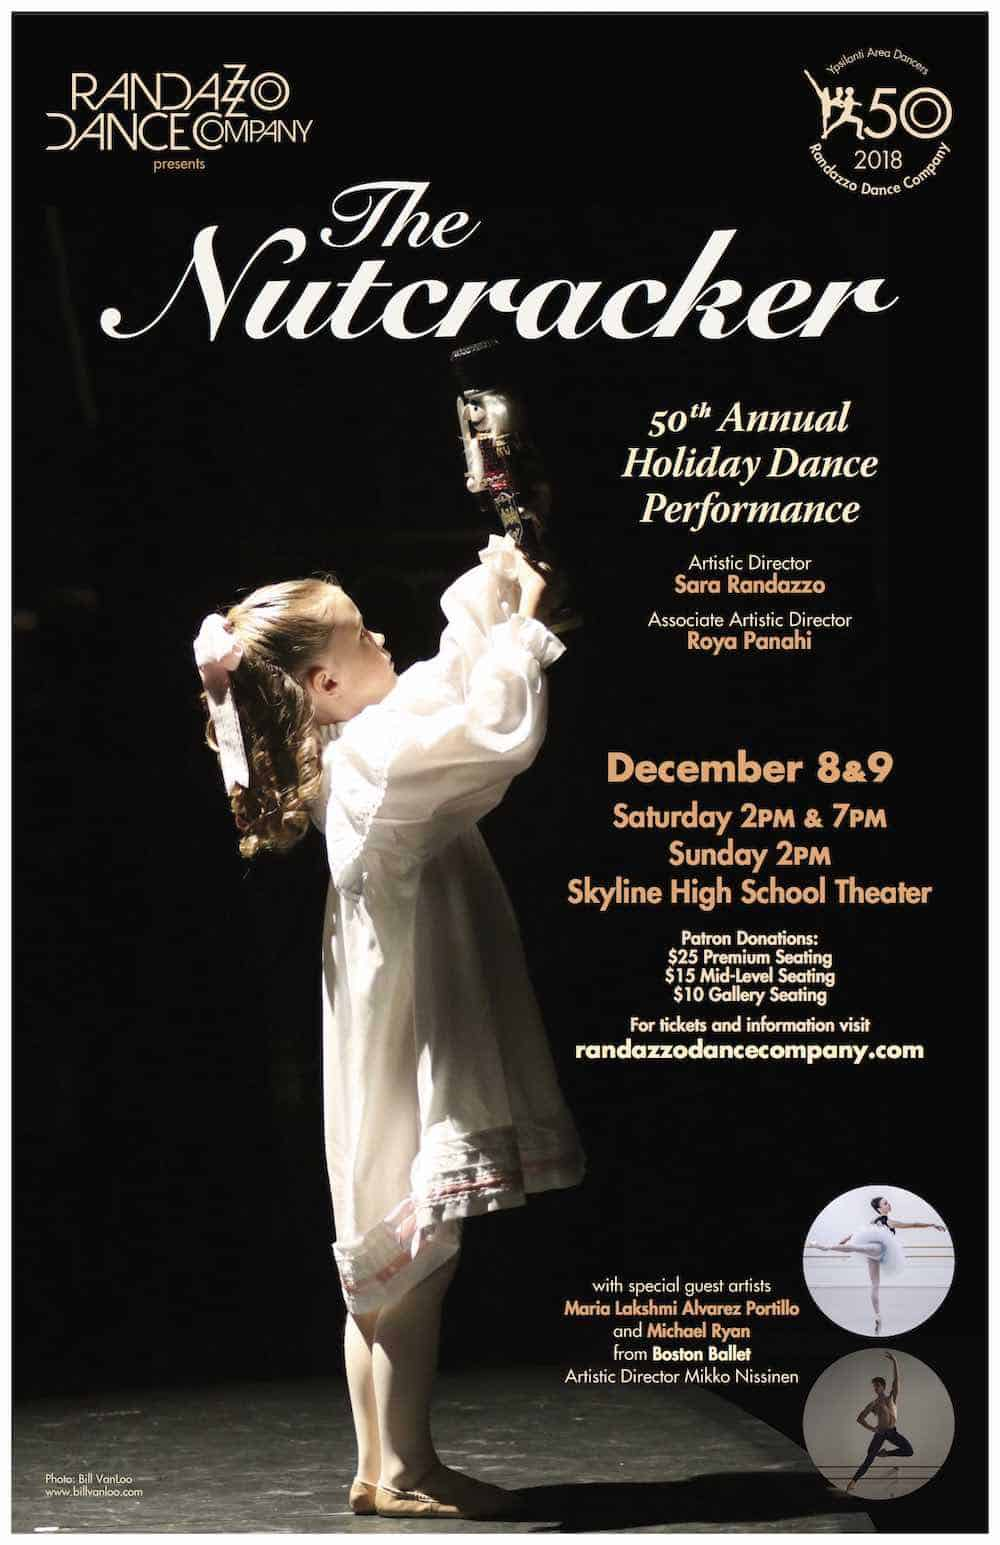 Randazzo Dance Company's The Nutcracker